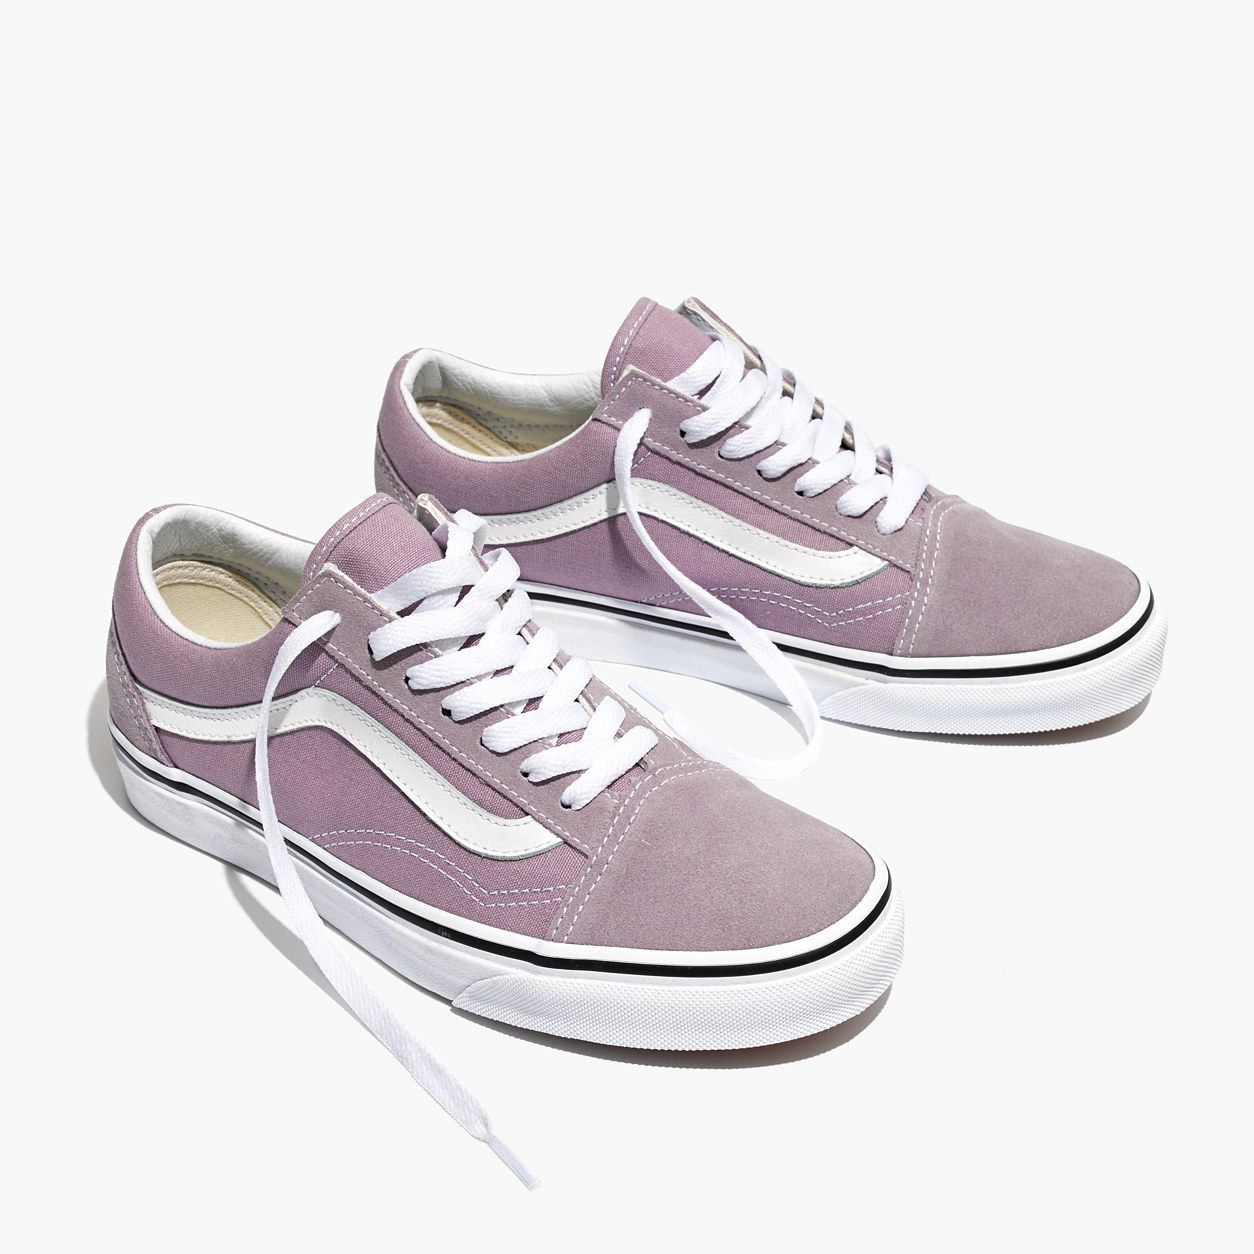 aaf48dd2269 Madewell Womens Vans Unisex Old Skool Lace-Up Sneakers In Sea Fog ...